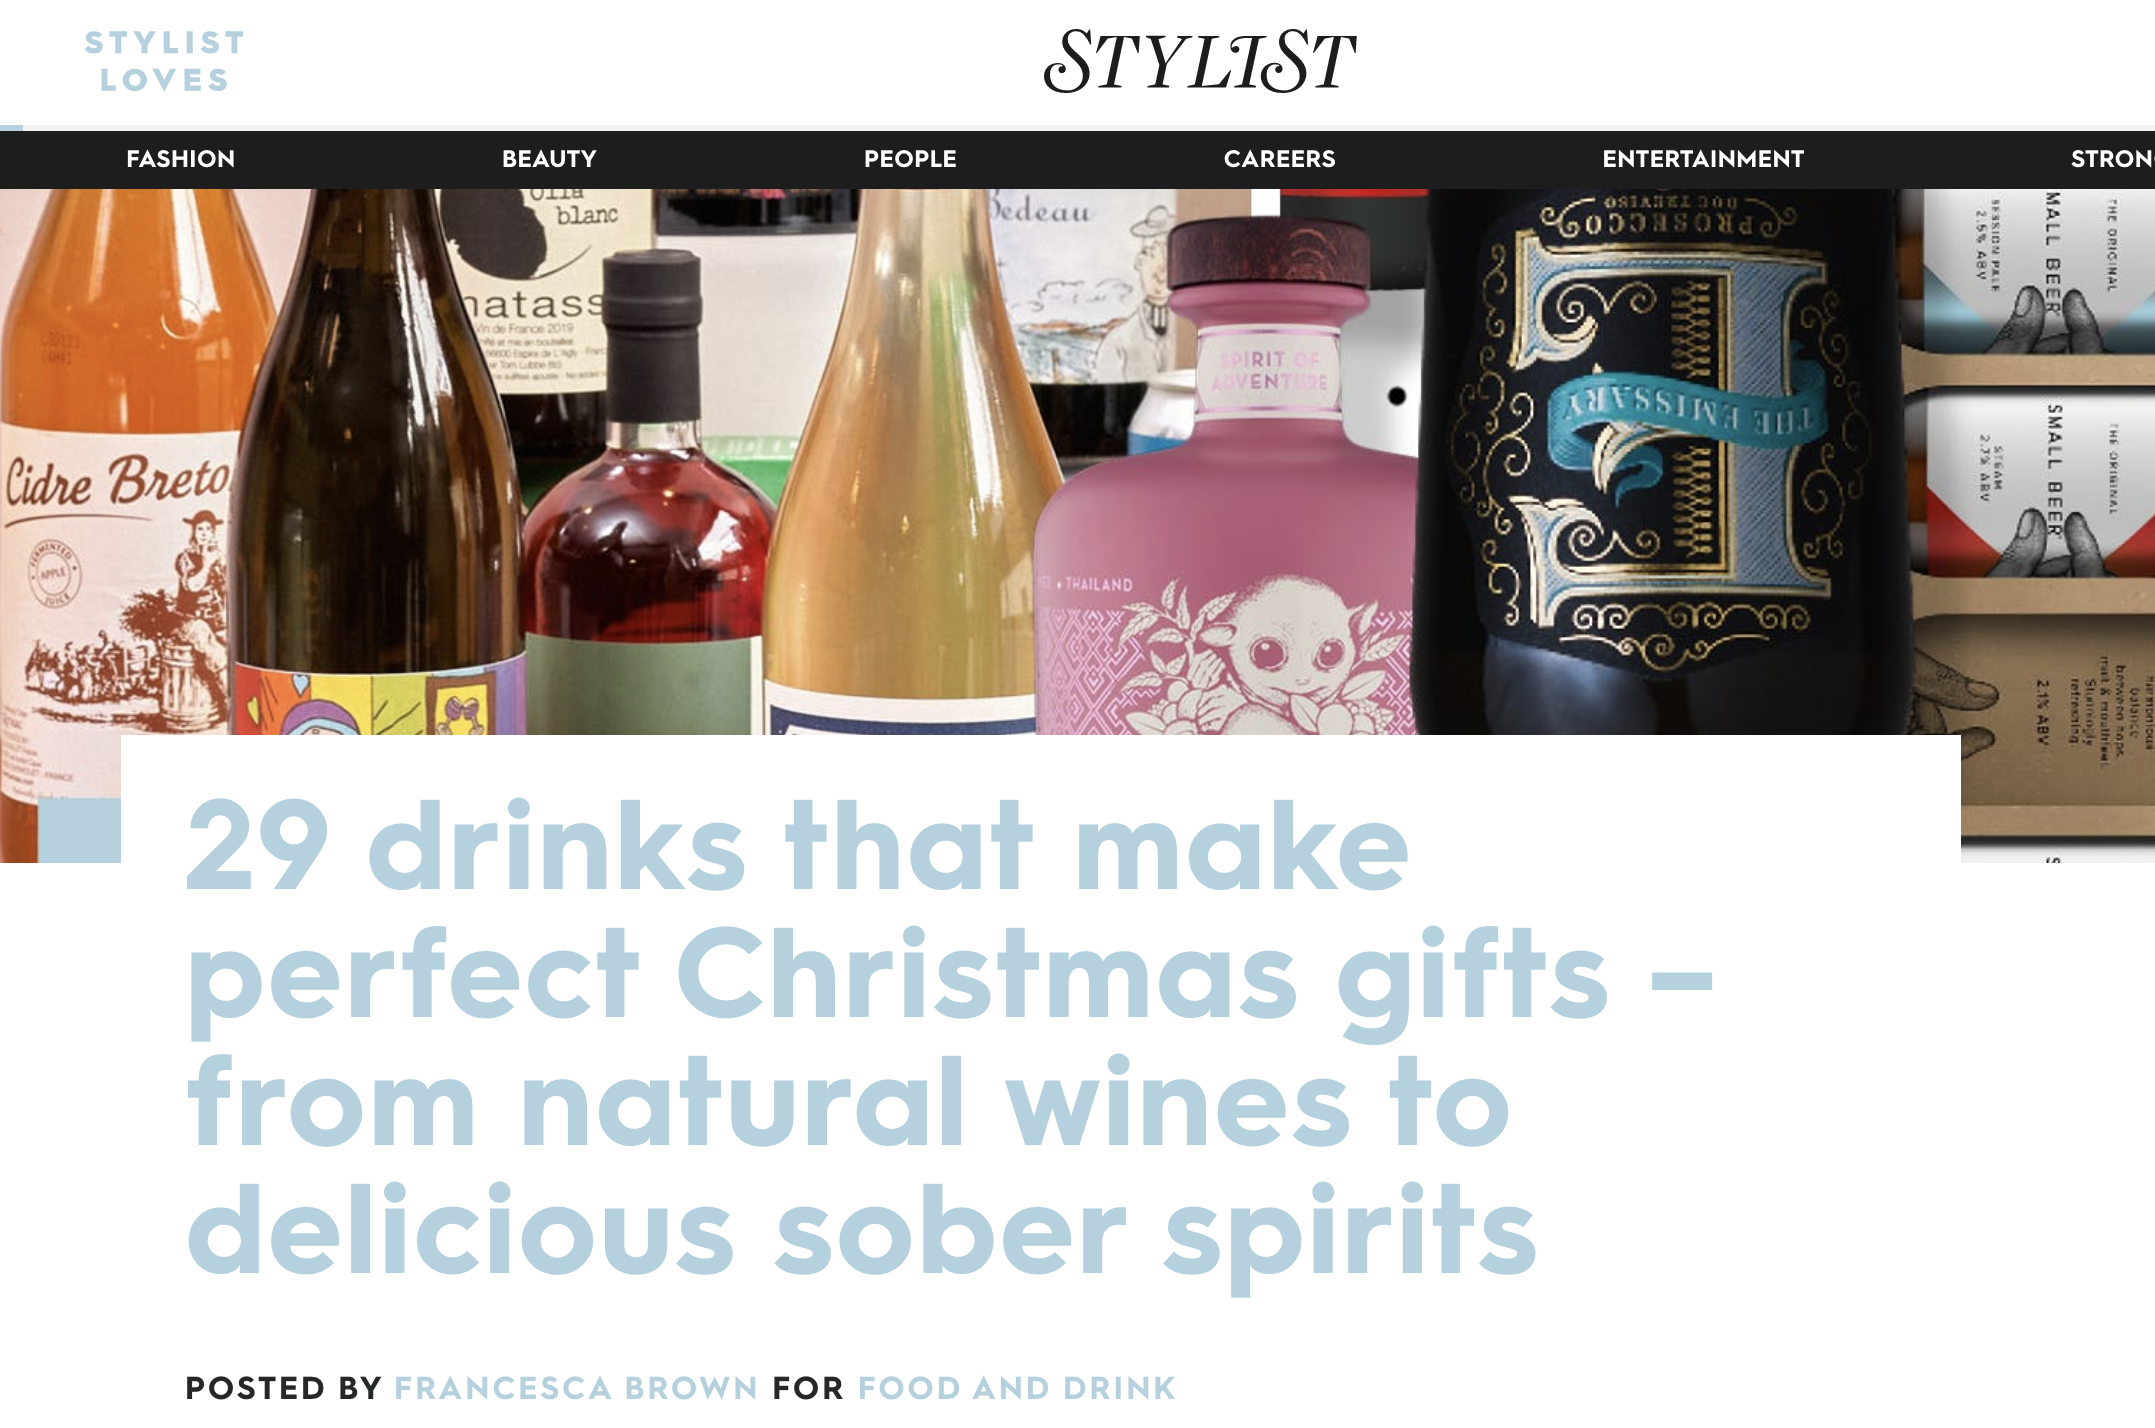 Stylist magazine has put out '29 drinks that make perfect Christmas gifts – from natural wines to delicious sober spirits' including Noughty alcohol-free sparkling Chardonnay.